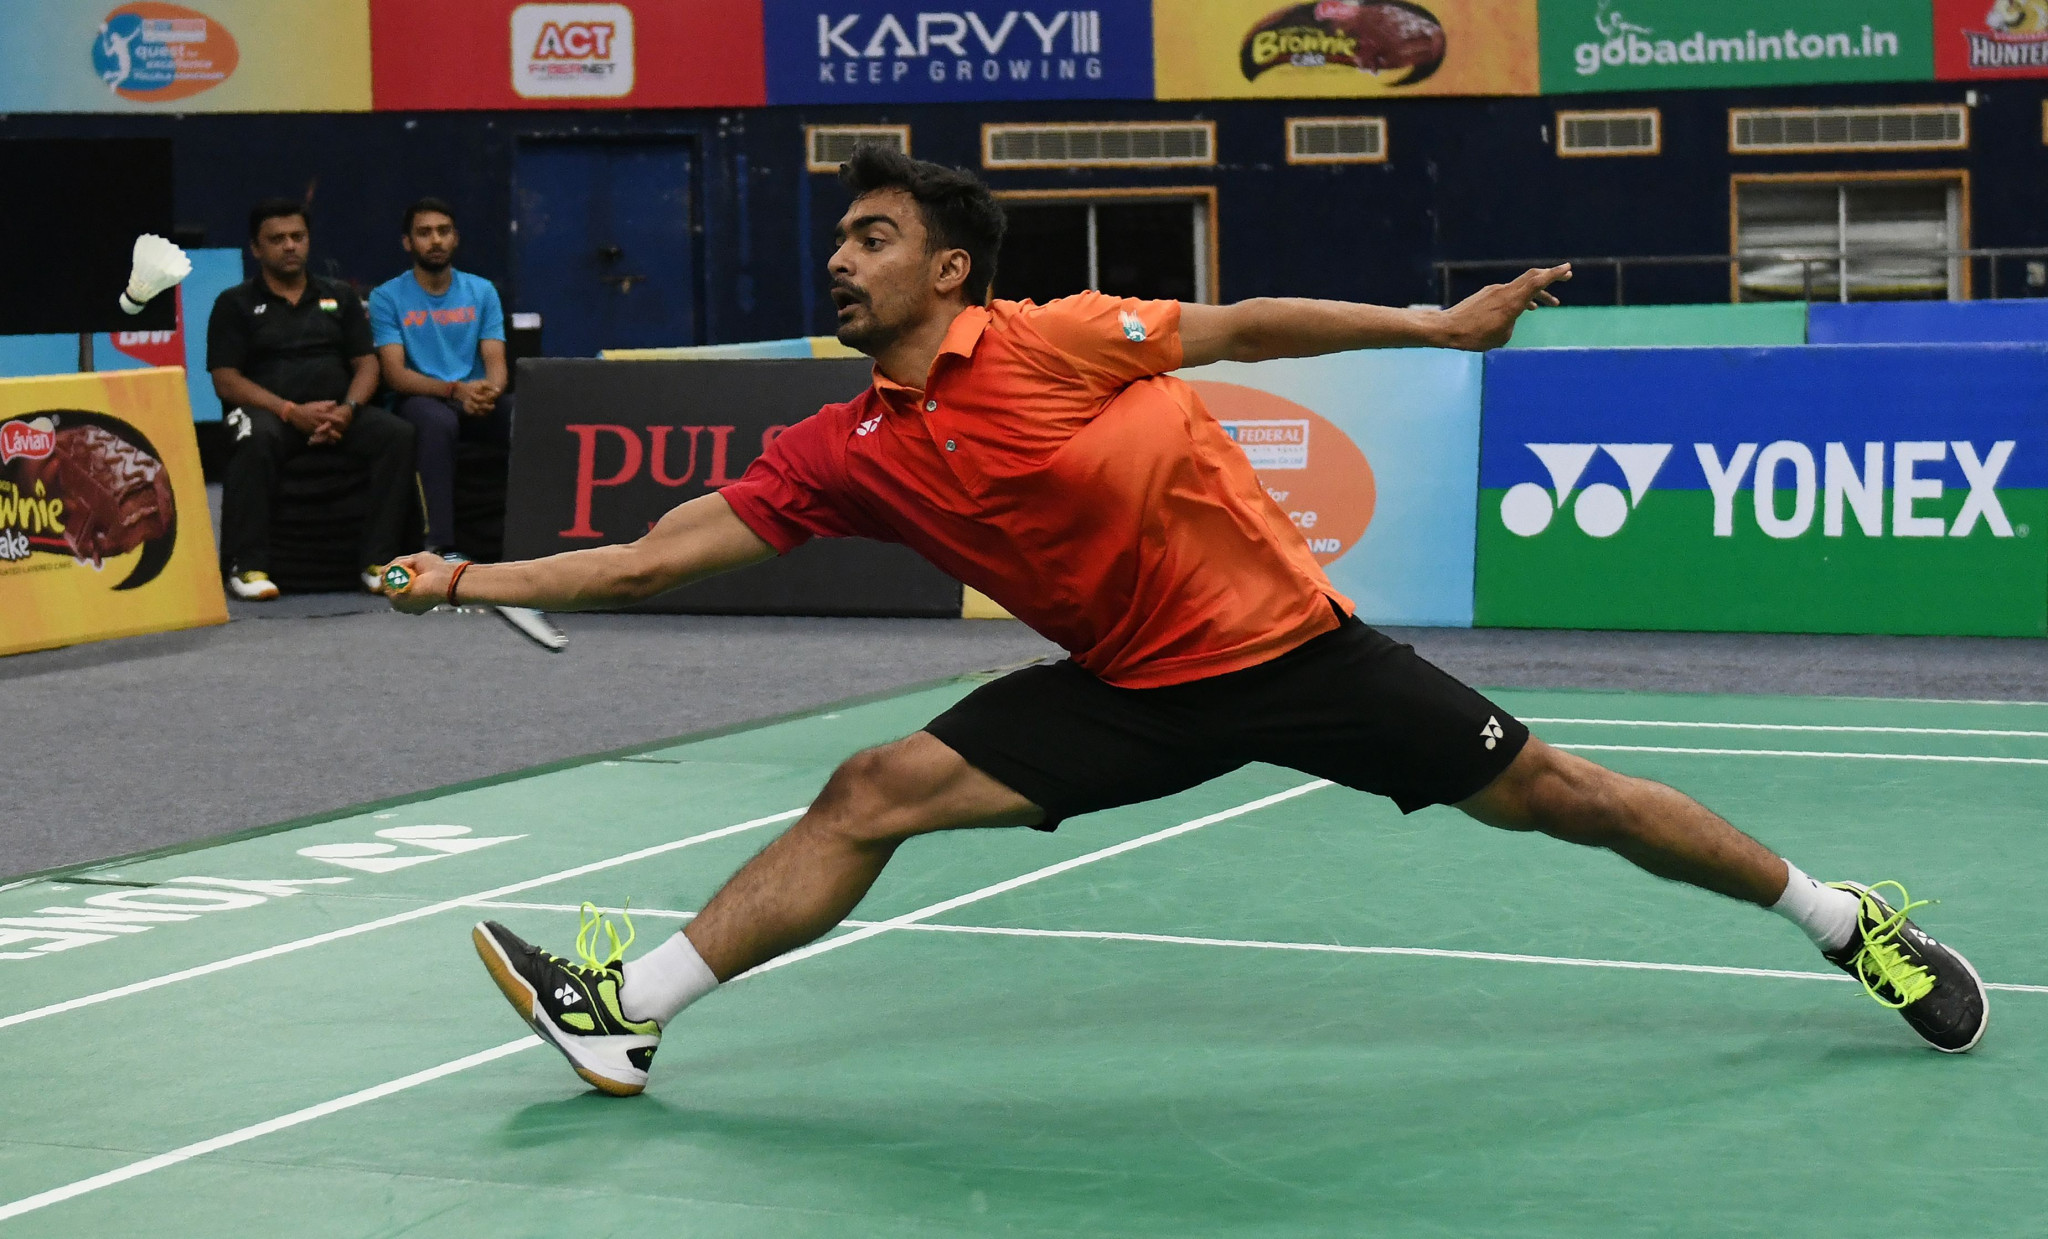 Verma secures home victory in men's singles final at Syed Modi International Badminton Championships